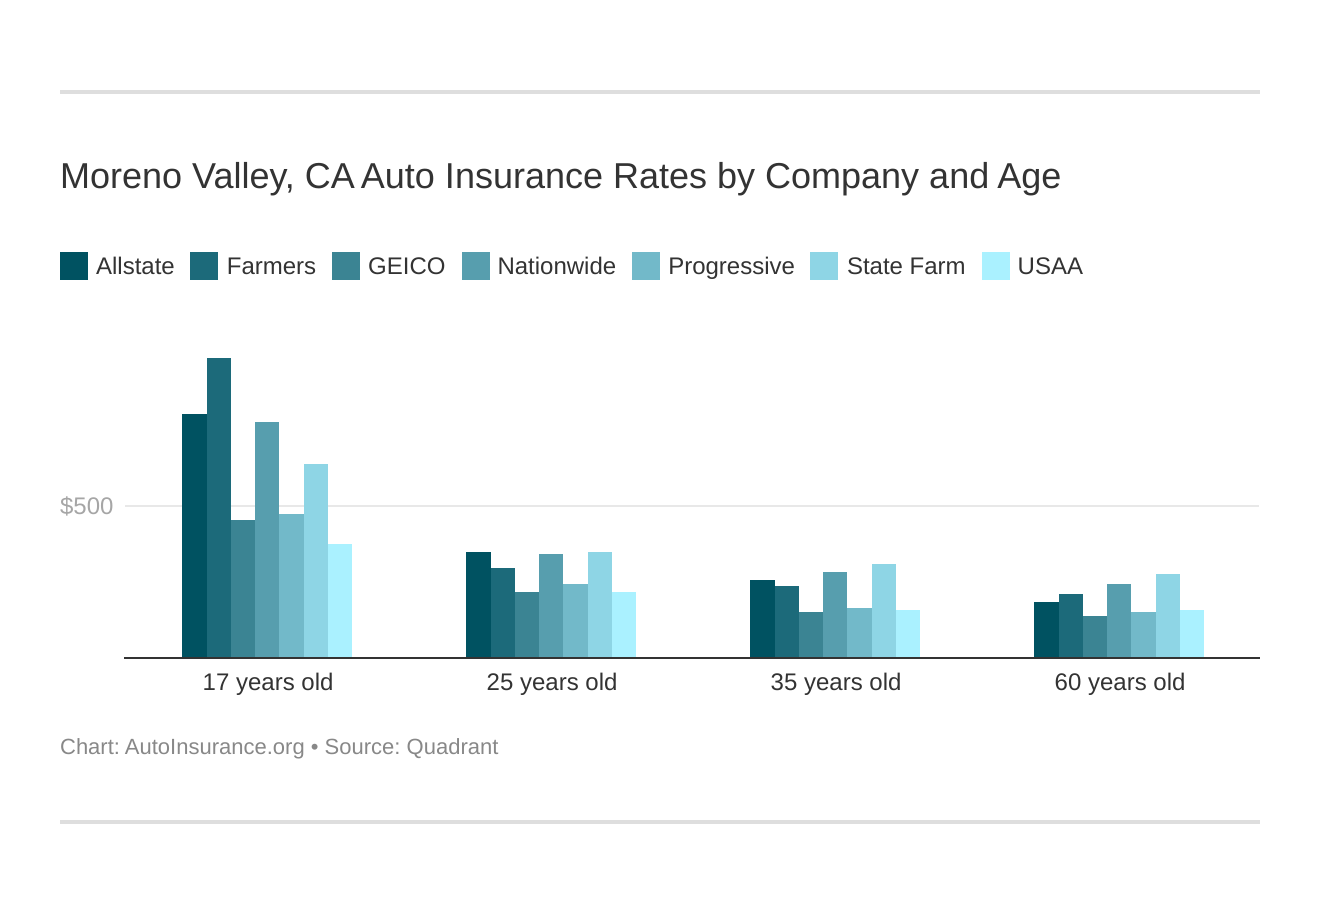 Moreno Valley, CA Auto Insurance Rates by Company and Age